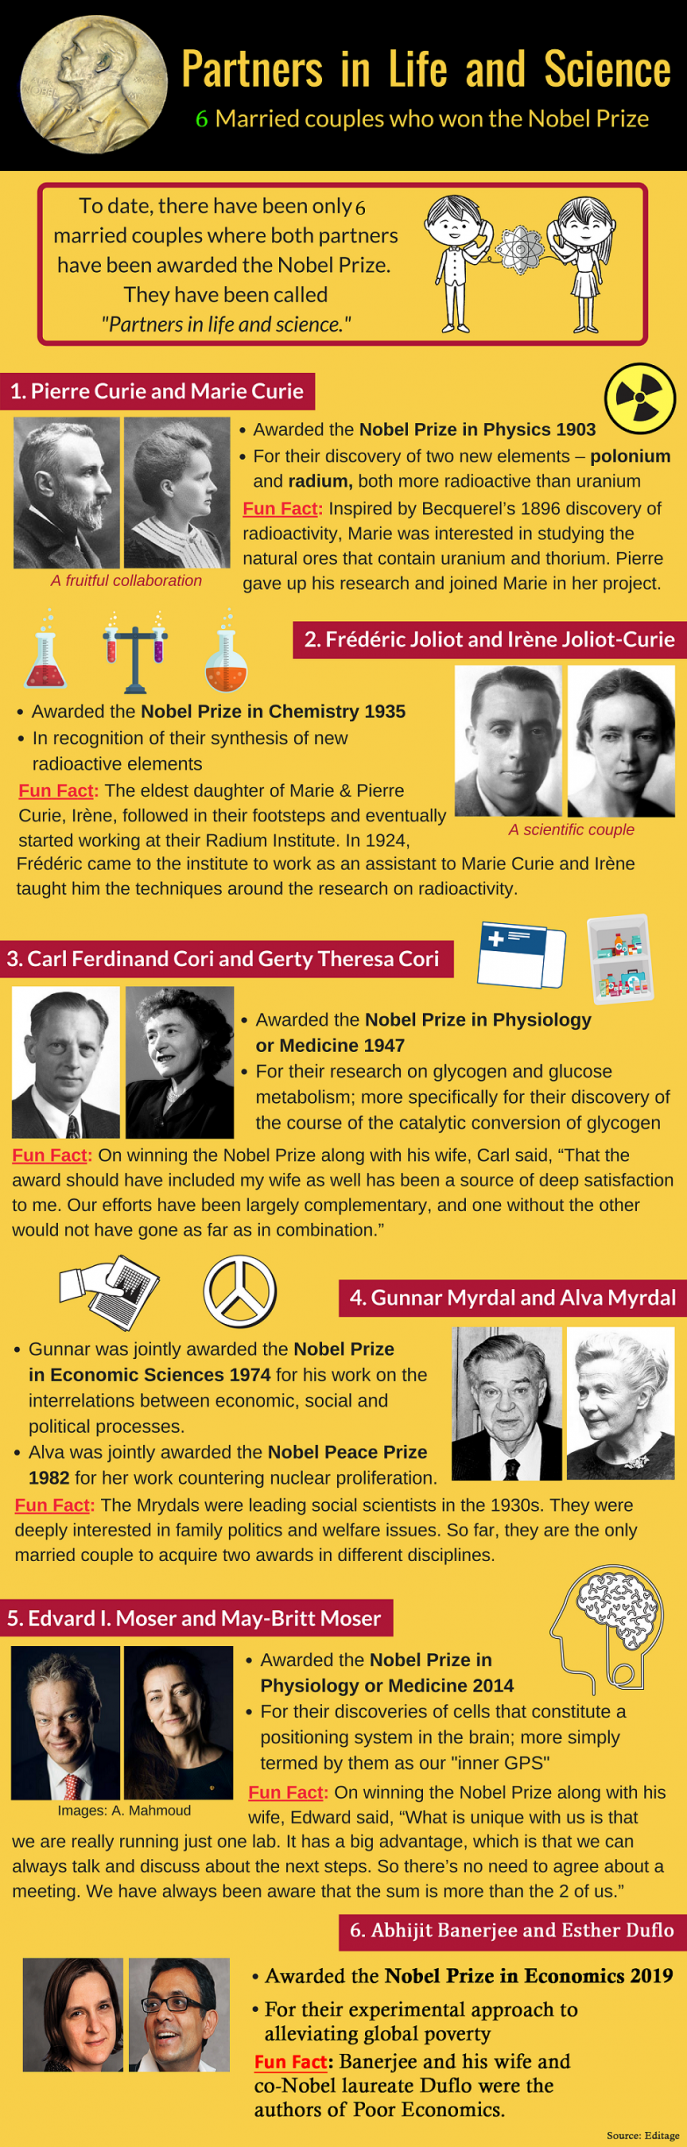 Partners In Life And Science Married Couples Who Won The Nobel